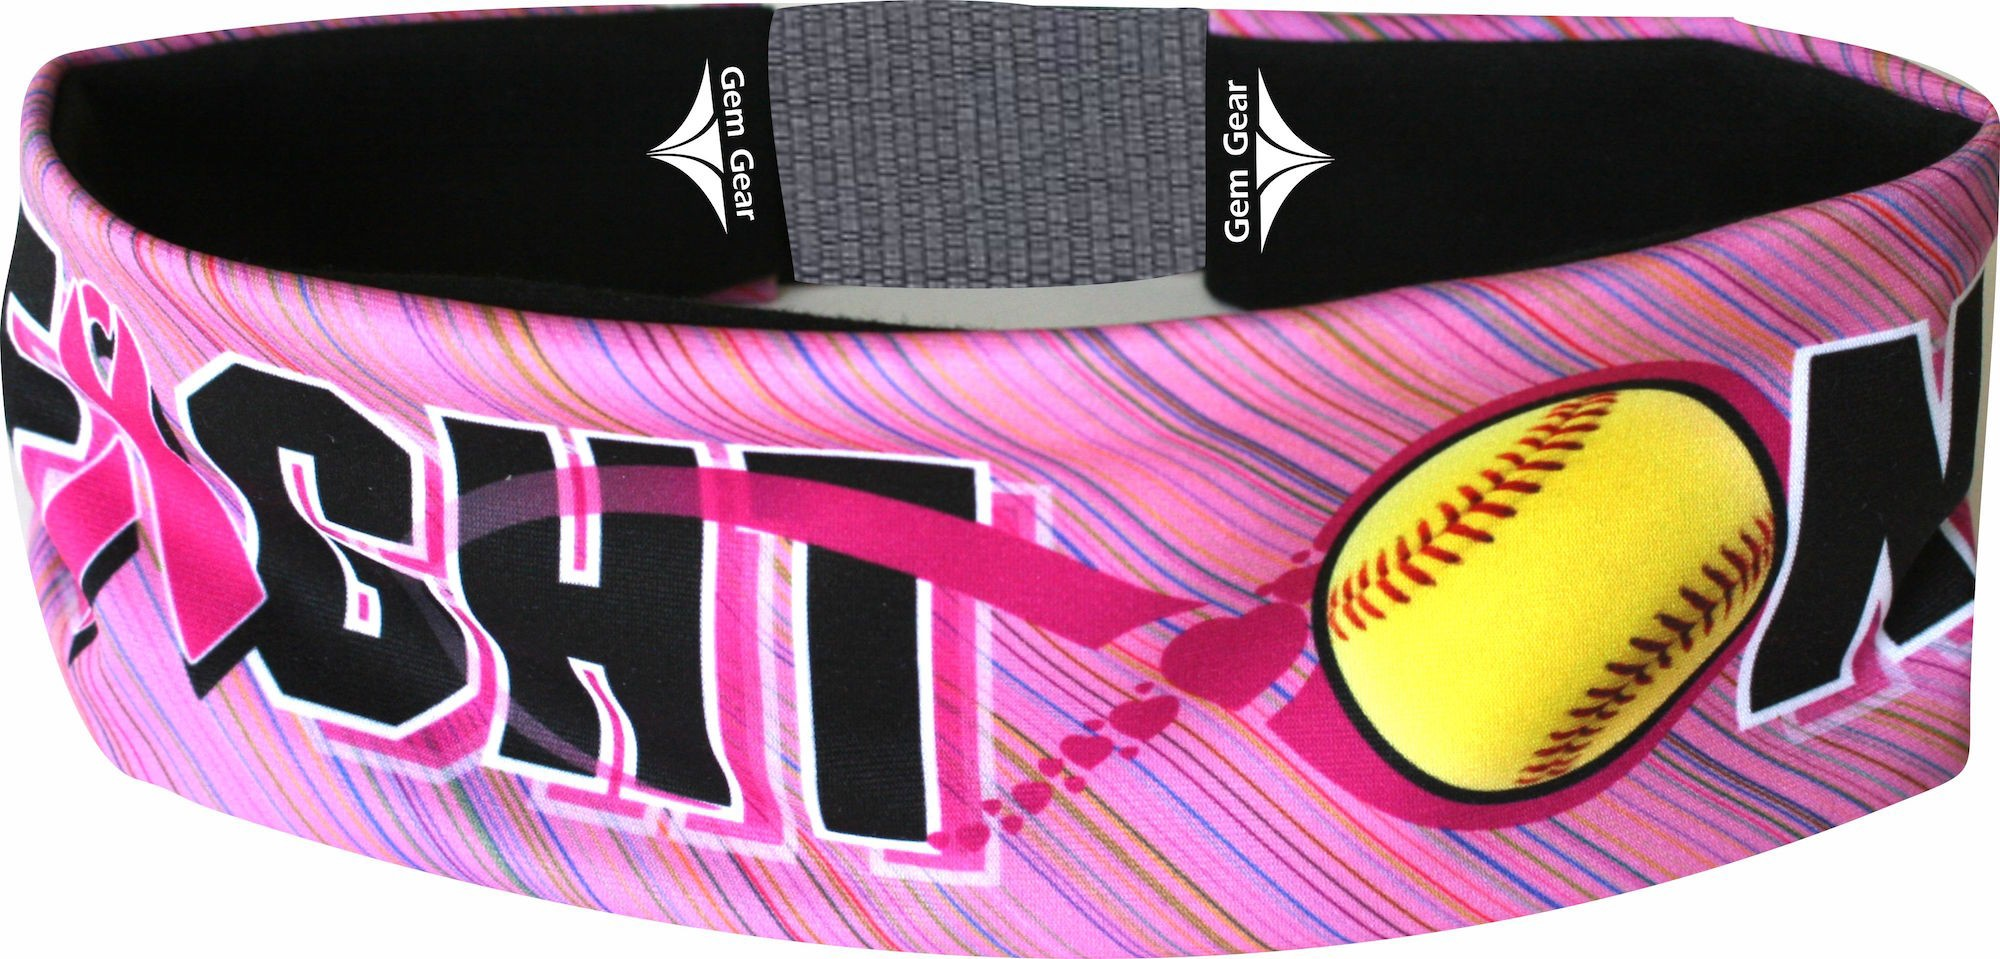 Fight On! Softball Head Band